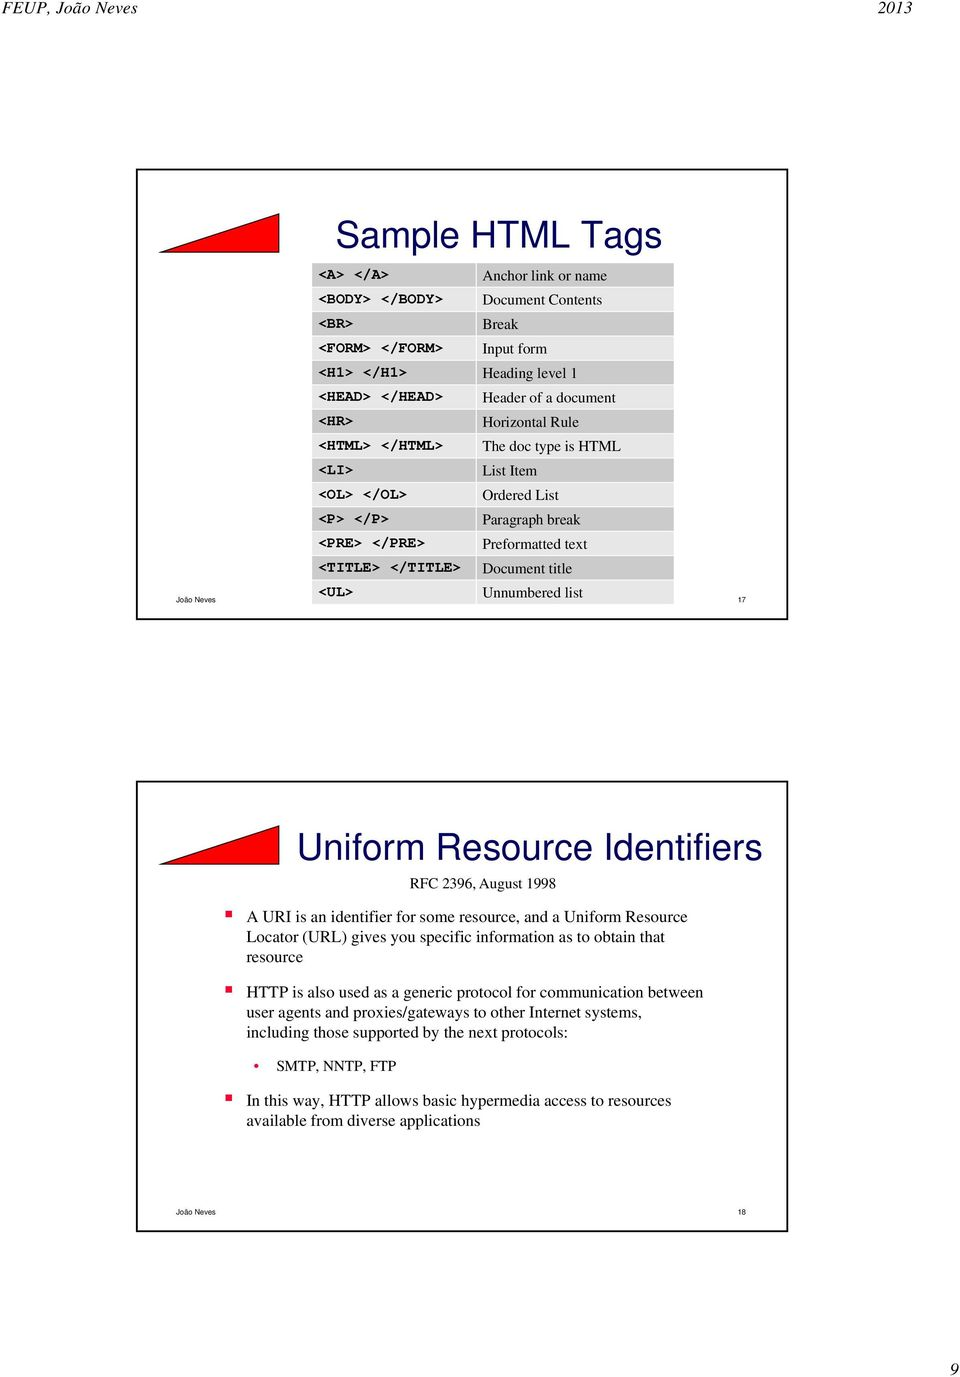 Uniform Resource Identifiers A URI is an identifier for some resource, and a Uniform Resource Locator (URL) gives you specific information as to obtain that resource HTTP is also used as a generic